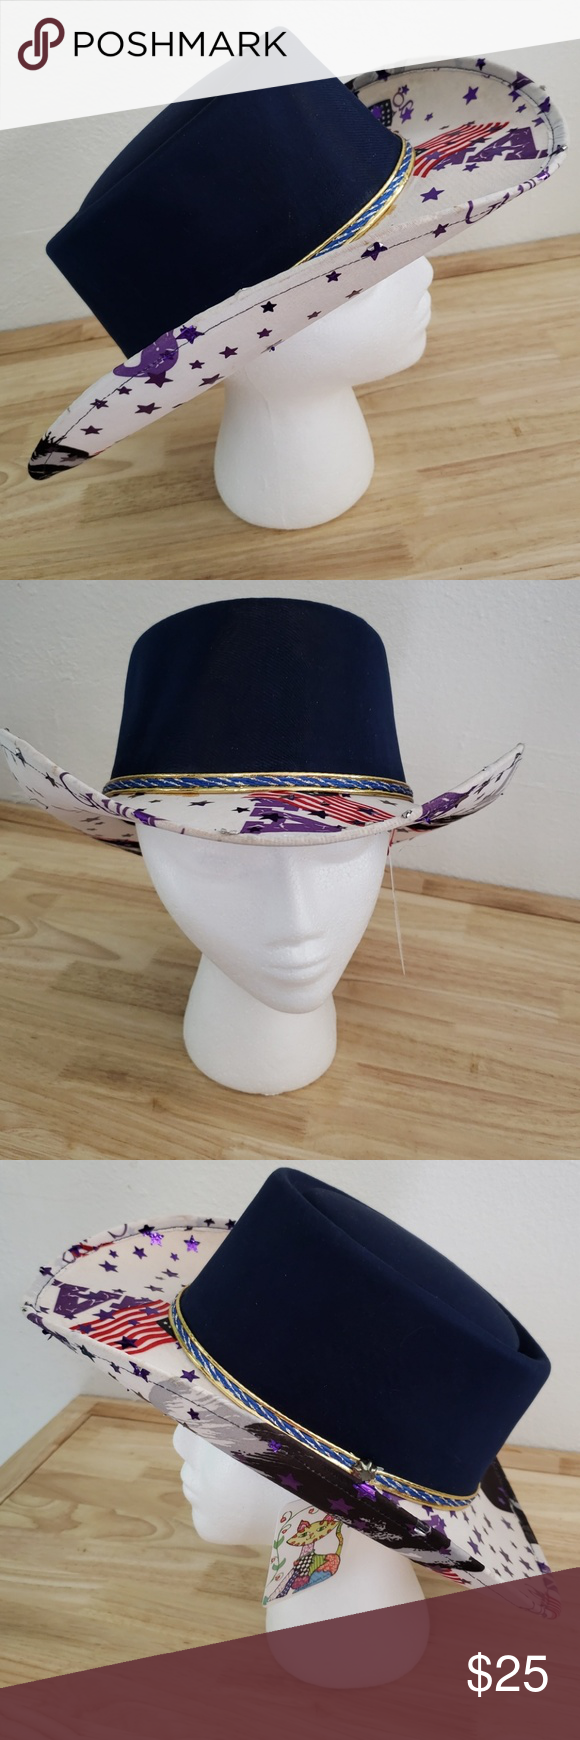 Purple Cowboy Hat Png / Cowboy hat is only one piece of a cowboy's attire.